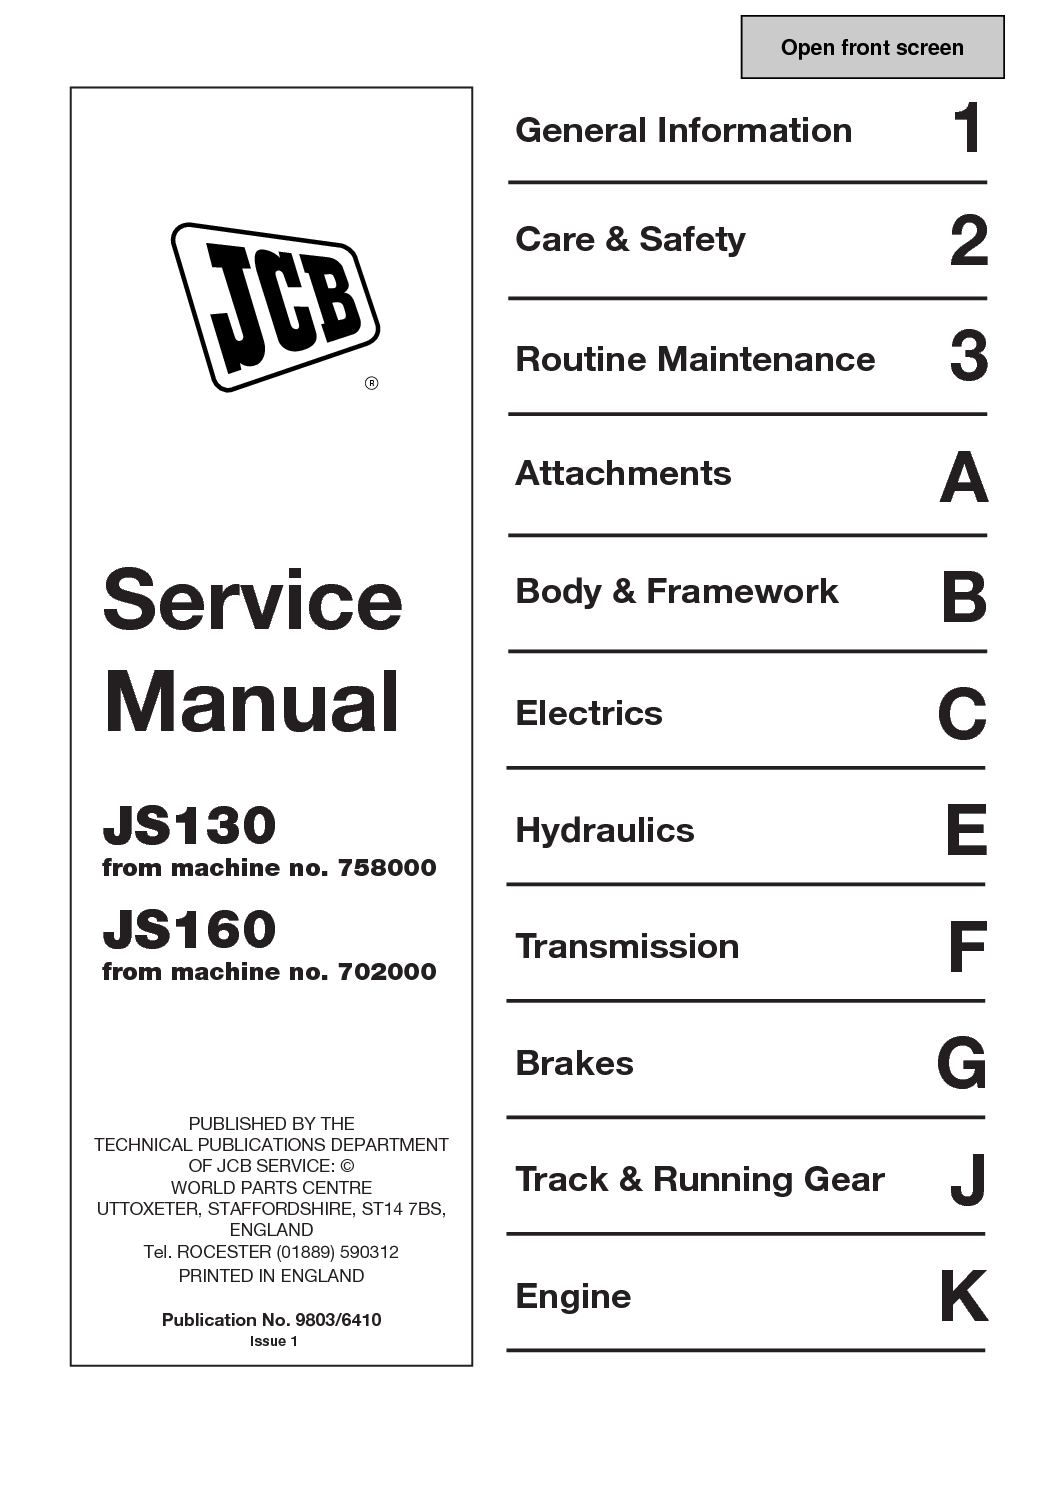 Calaméo - JCB JS130 TRACKED EXCAVATOR Service Repair Manual ... on jcb 525 50 wirng diagram, hyster forklift diagram, jcb transmission diagram, cummins engine diagram, jcb tractor, jcb parts diagram, jcb skid steer diagrams, jcb backhoe wiring schematics, jcb battery diagram,